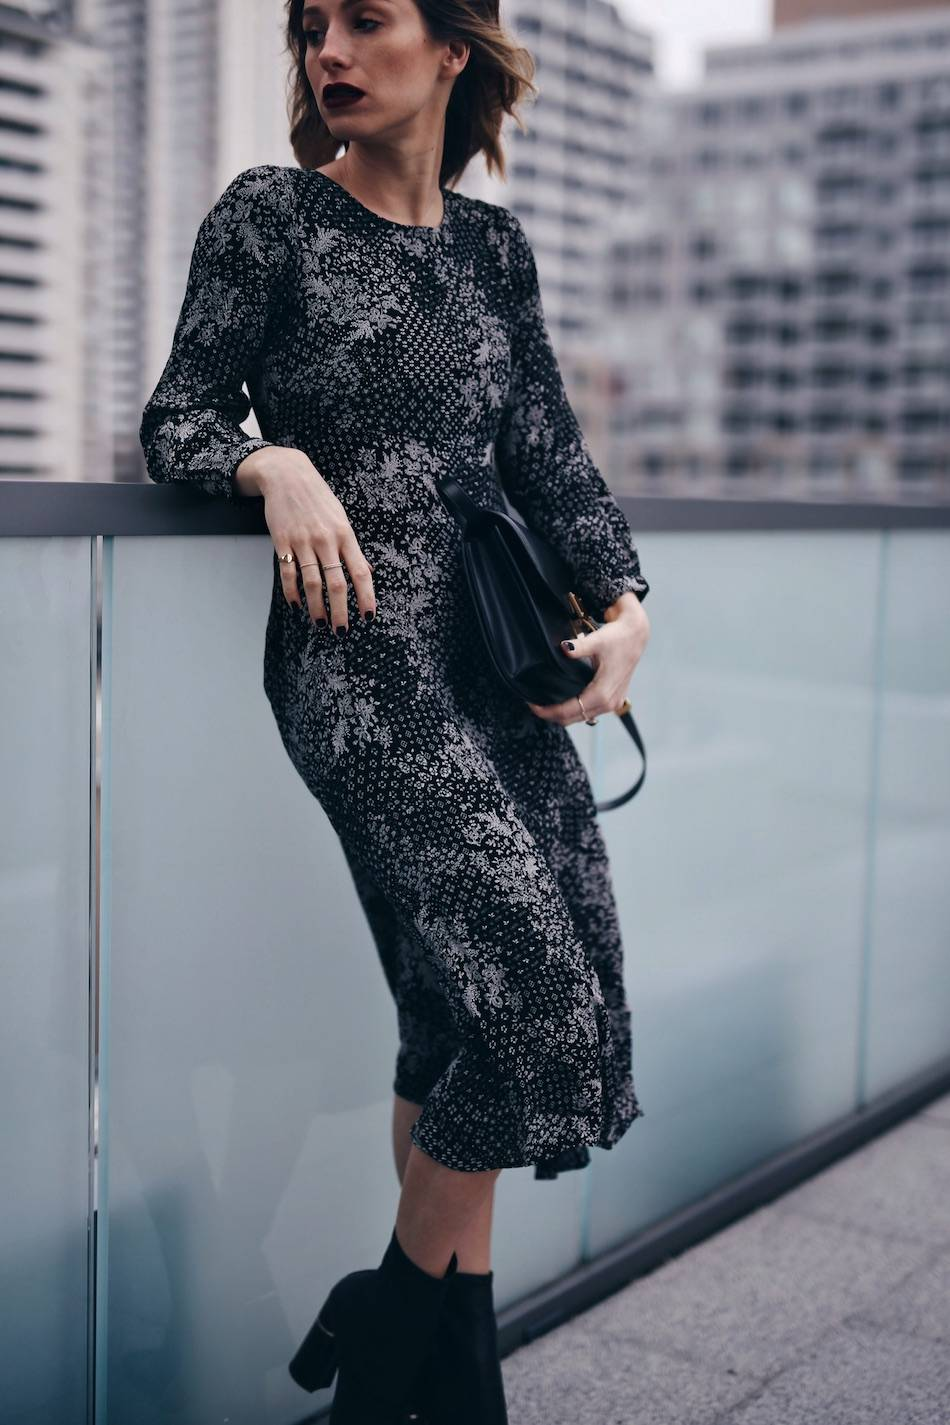 style-blogger-jill-lansky-of-the-august-diaries-showing-easy-holiday-outfit-ideas-for-2016-in-old-navy-print-dress-celine-box-bag-and-mejuri-gold-rings